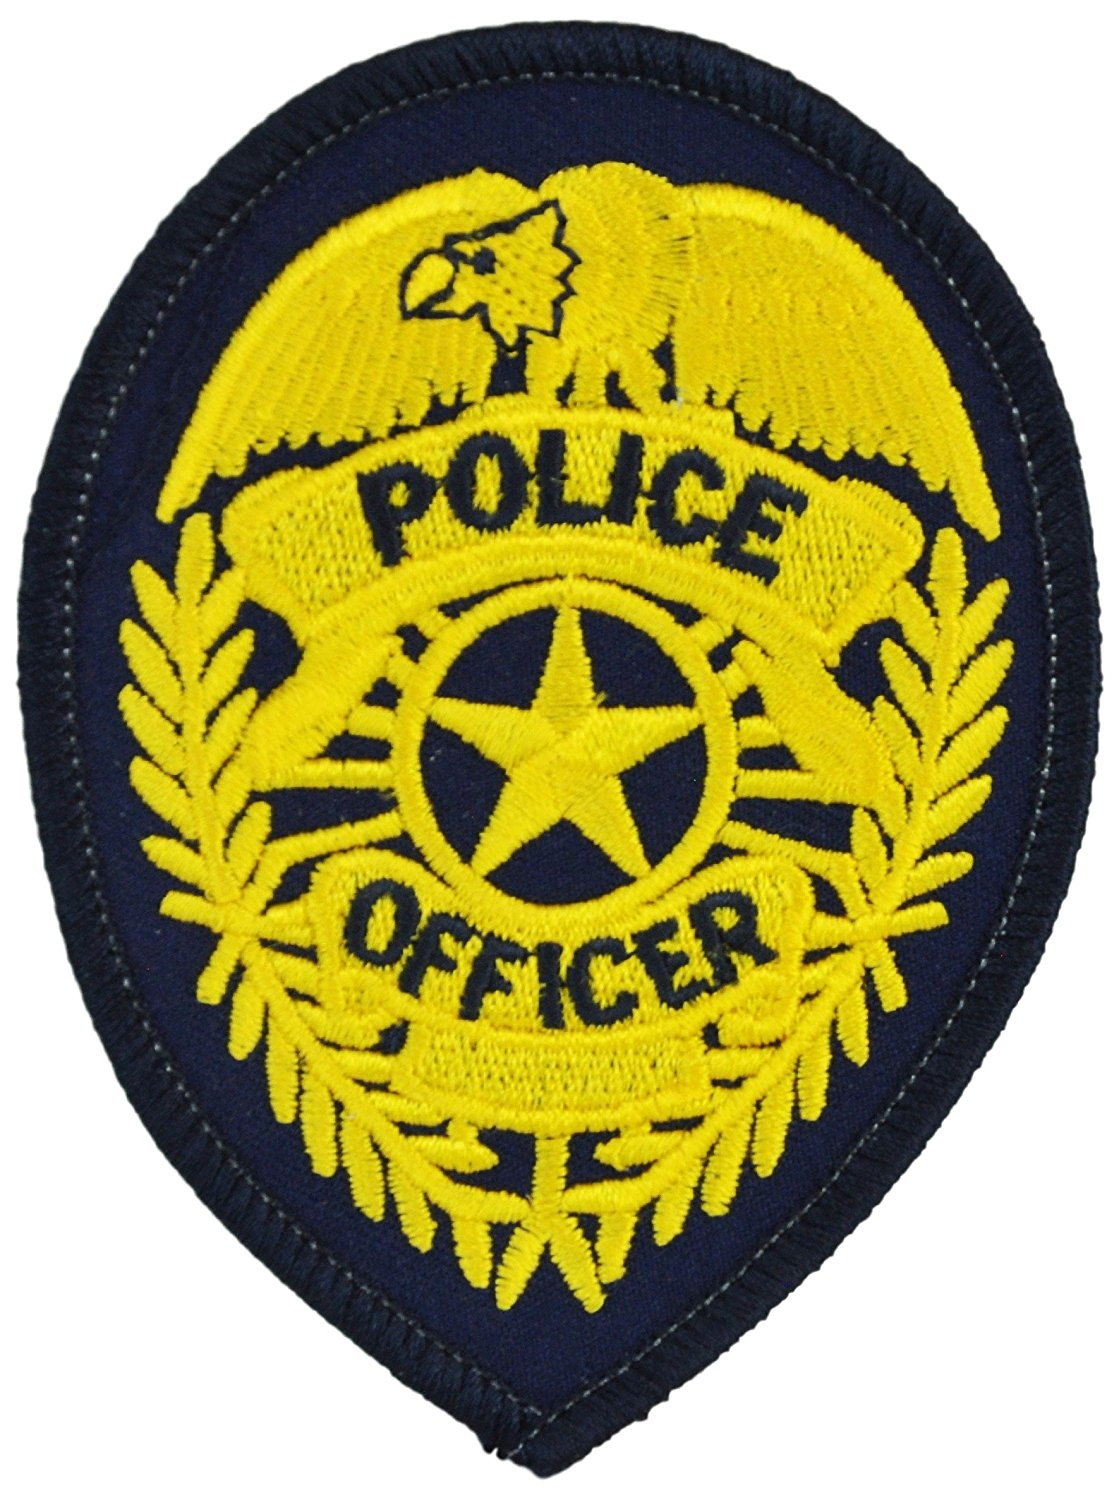 Tactical 365 Operation First Response Pair of Security Enforcement Officer's or Police Officer Badge Patches - Police Officer, Gold on Navy